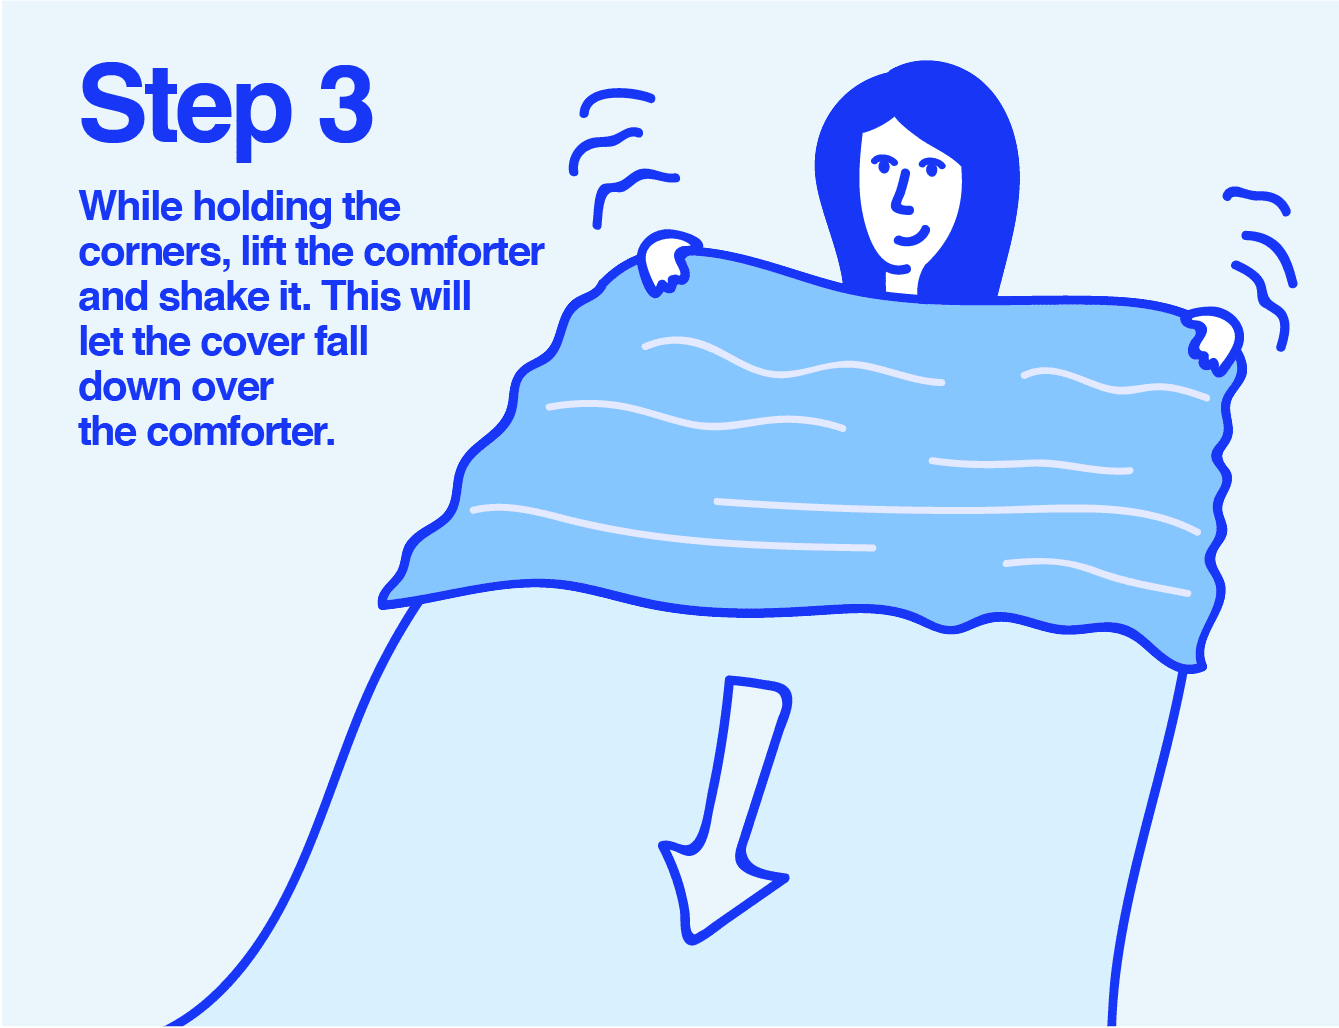 Info graphic of a woman shaking a duvet cover over top of a comforter